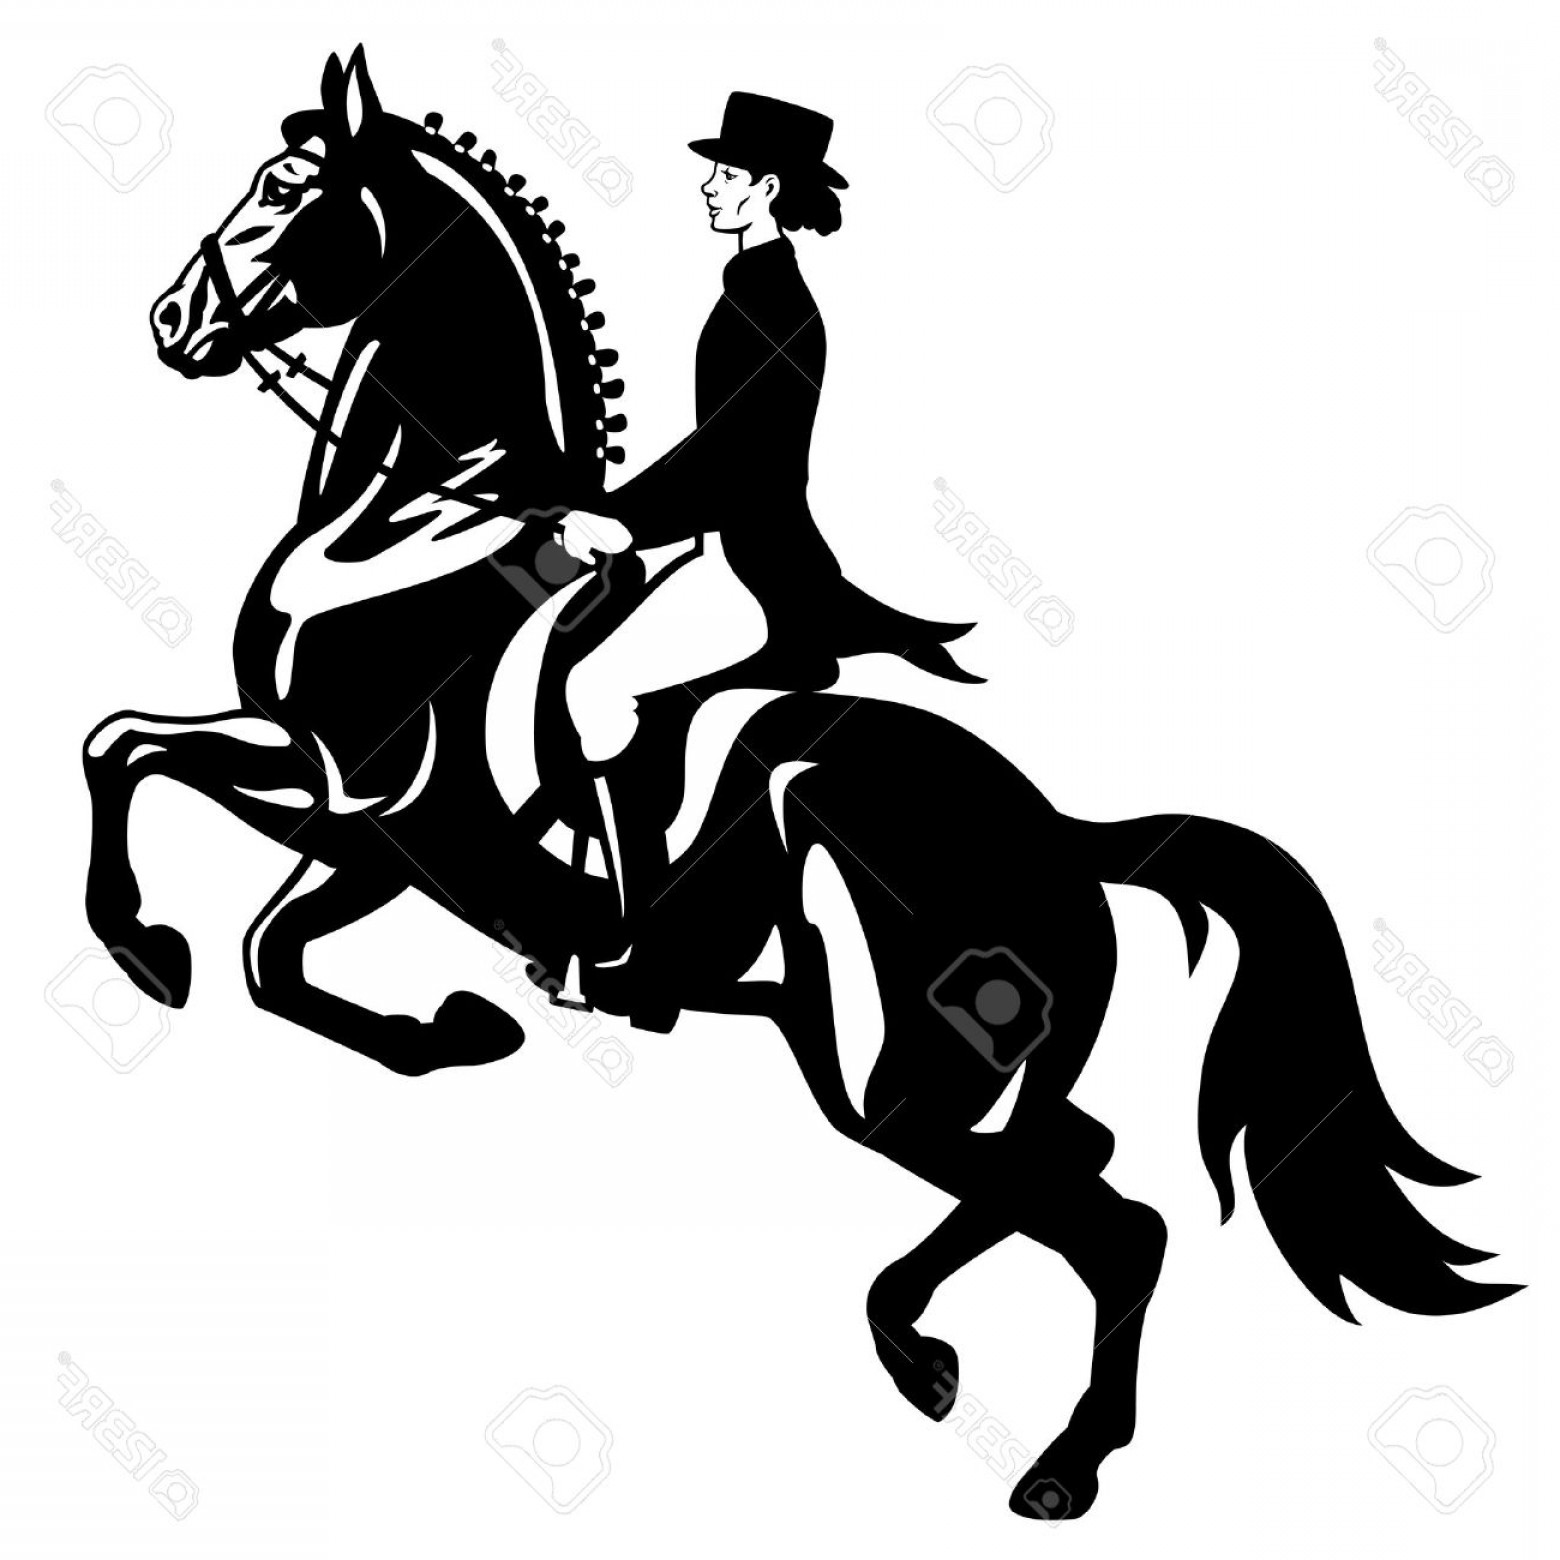 Horse And Rider Vector Art: Photohorse Rider Dressage Equestrian Sport Vector Image Isolated On White Background Side View Picture